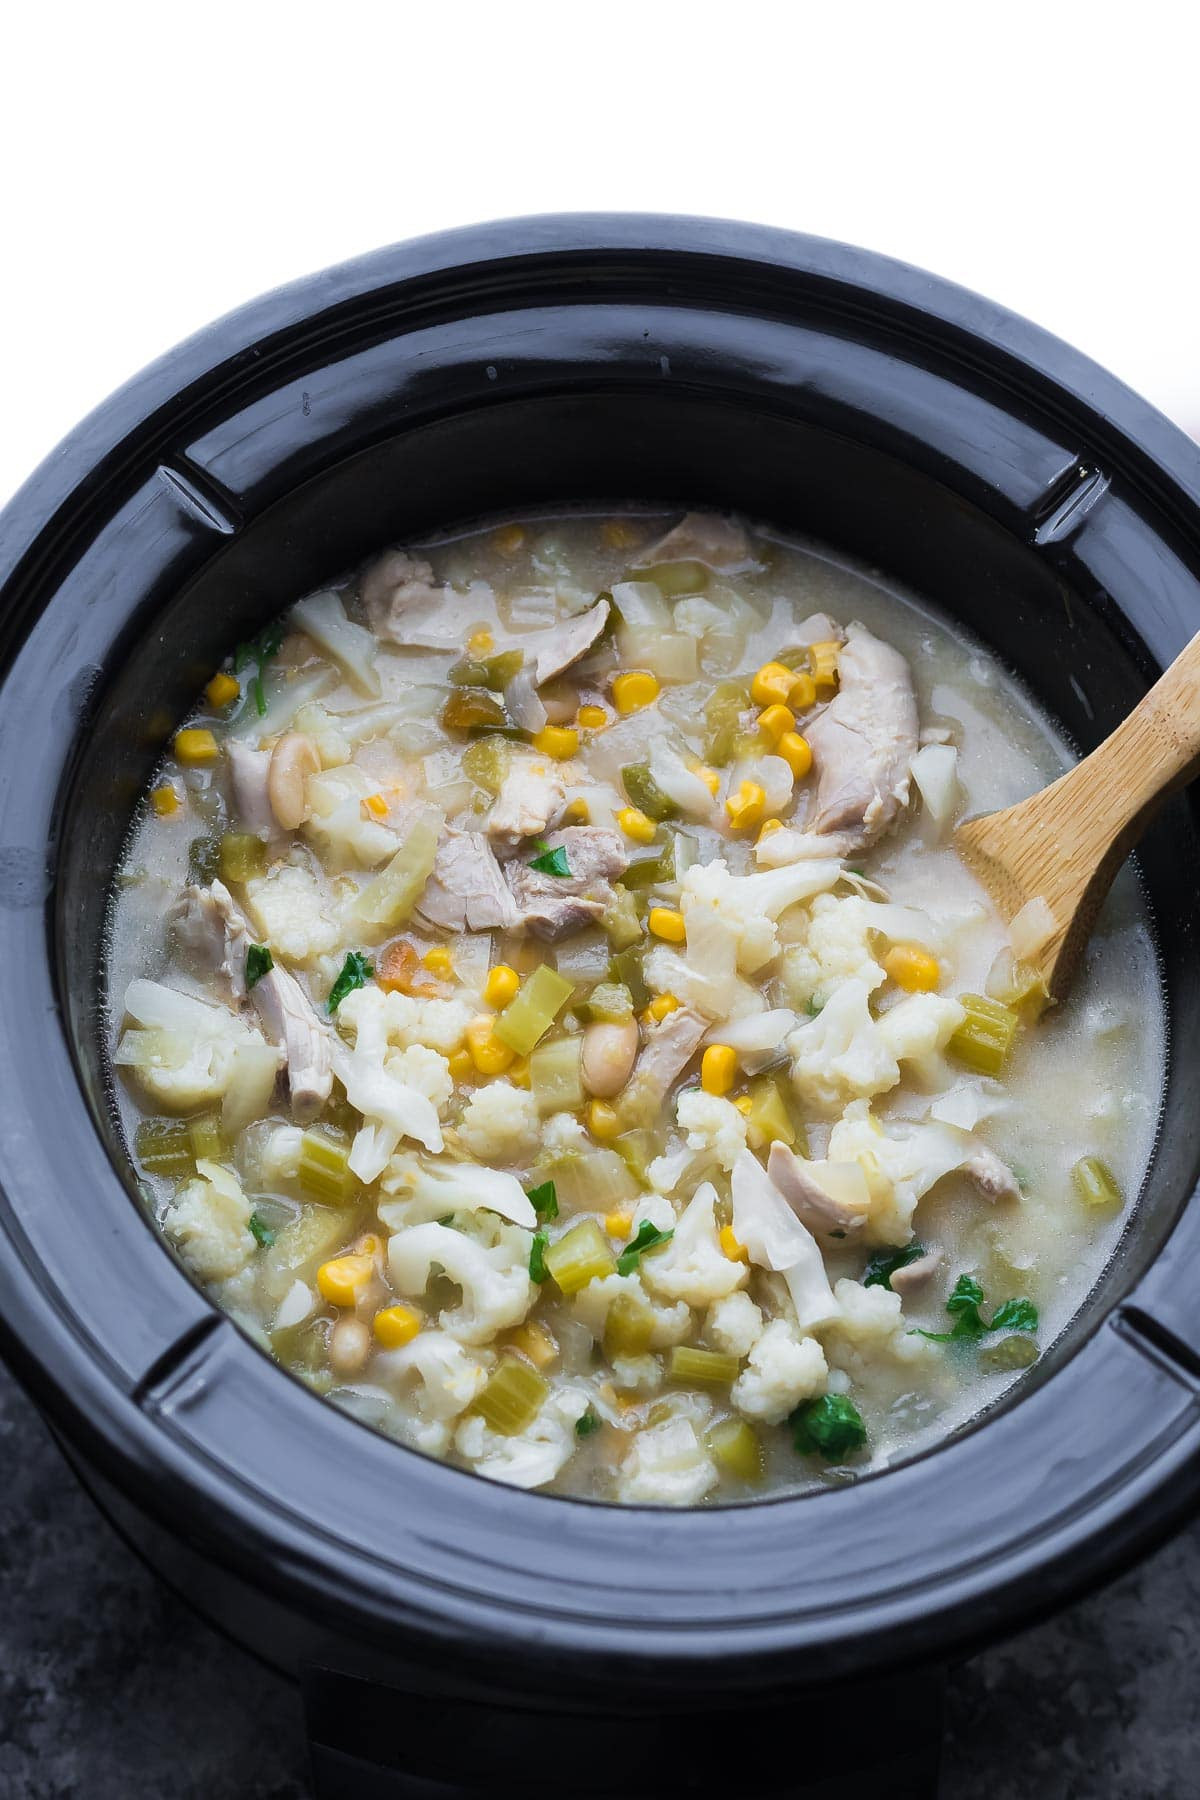 Healthy Chicken Chili Slow Cooker  Healthy Slow Cooker White Chicken Chili Freezer to Crock